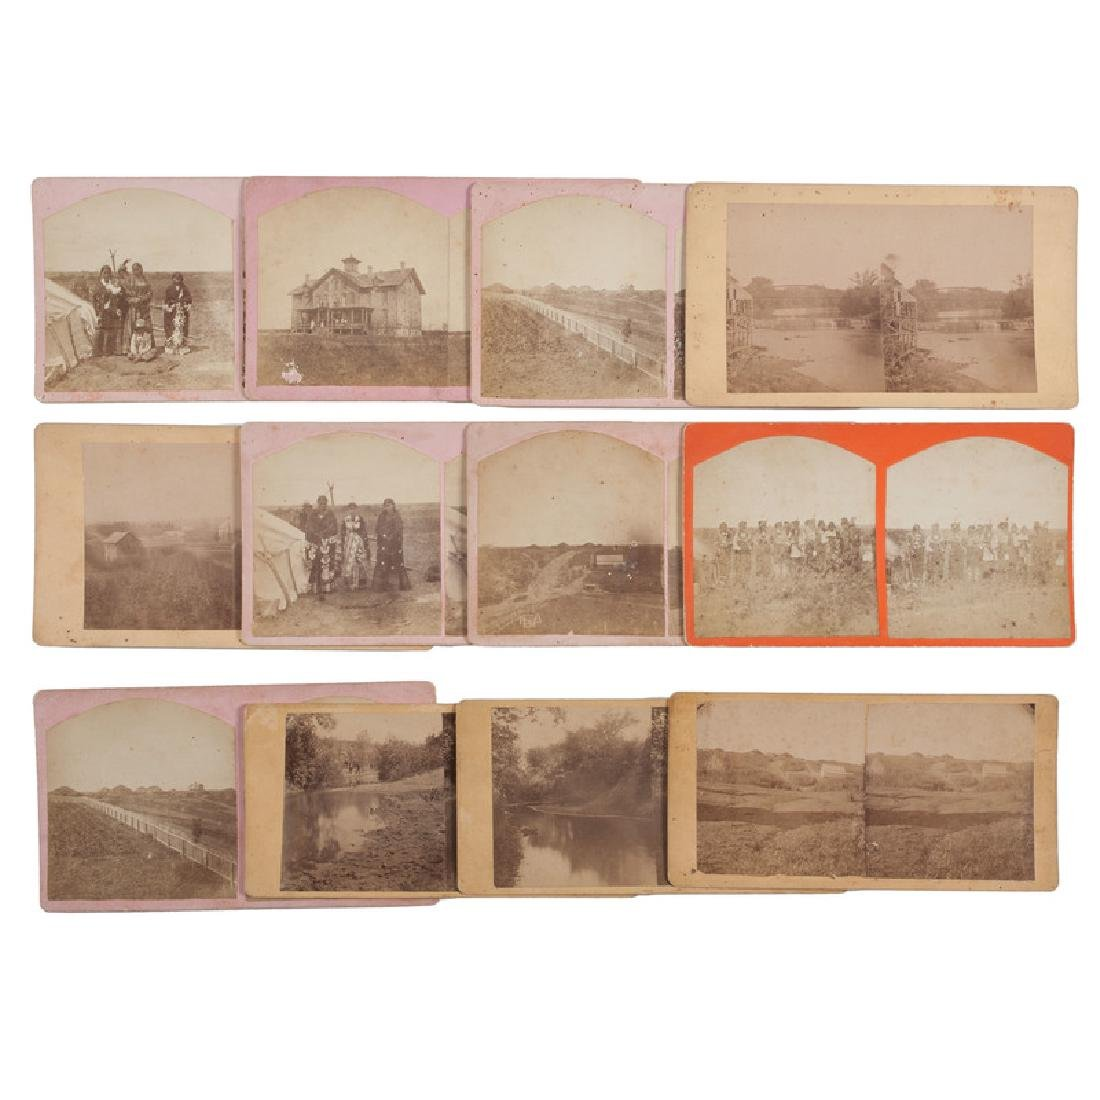 Scarce Group of Stereoviews Depicting Otoe, by